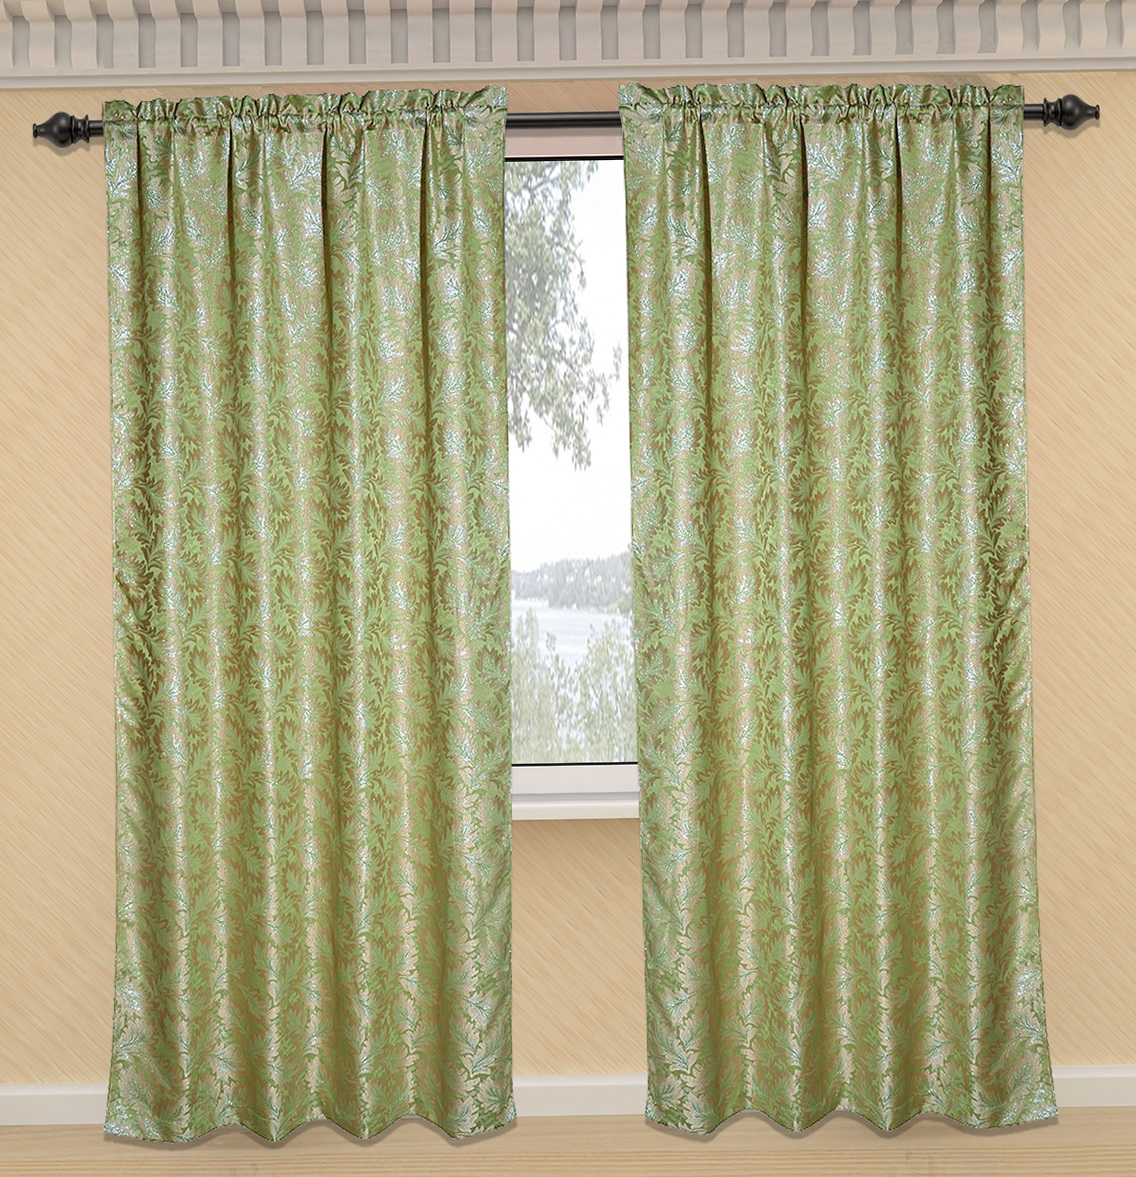 Cream And Sage Green Curtains Home Design Ideas